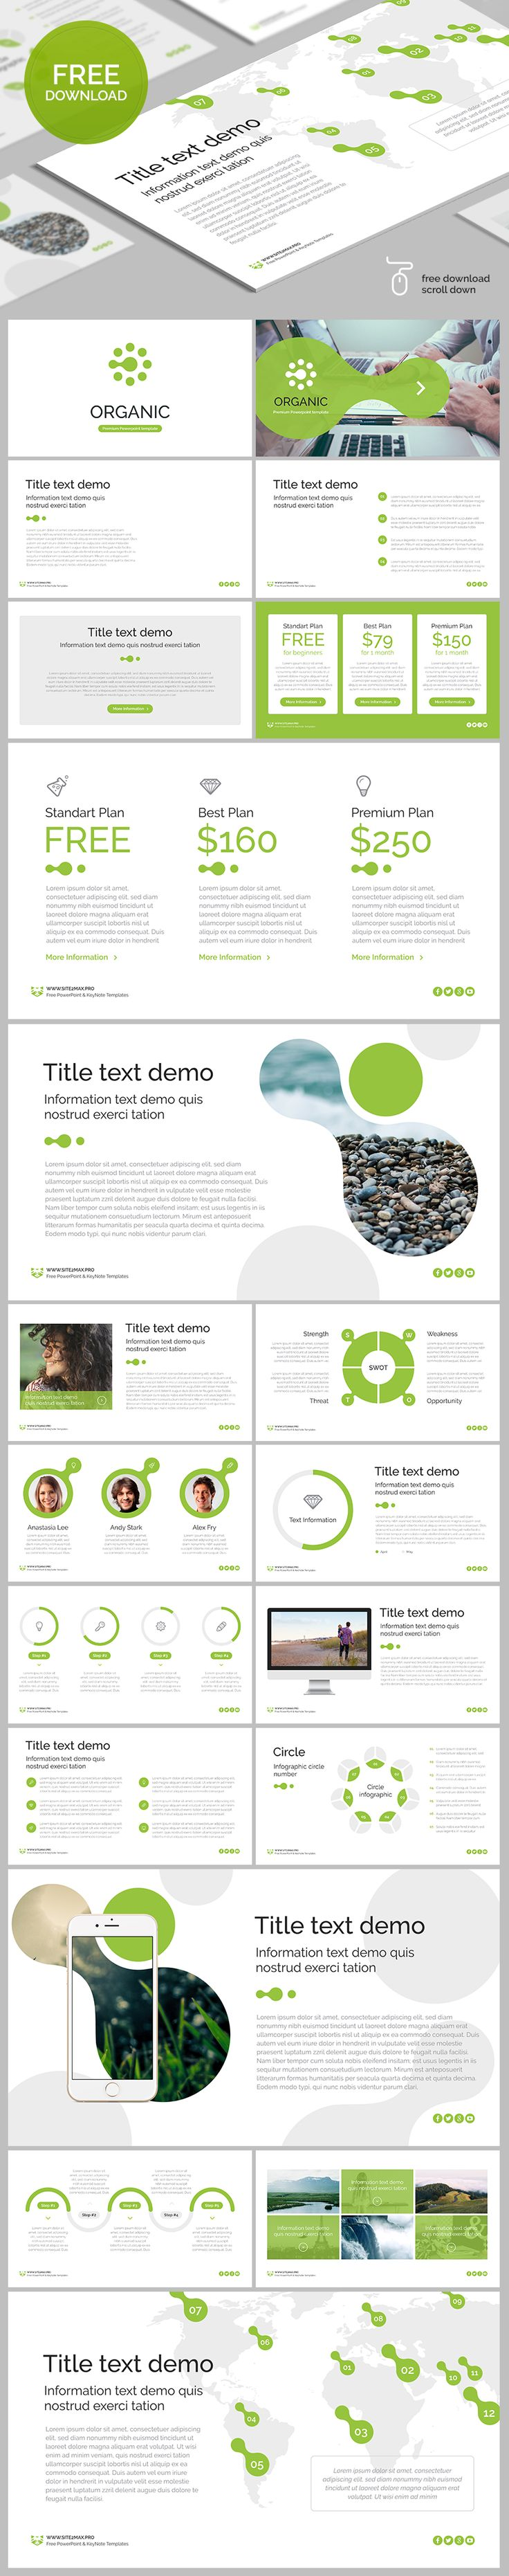 40 best free powerpoint template images on pinterest free stencils the free powerpoint template organic is comprised of 20 slides with all necessary elements swot tables biographies more free templates toneelgroepblik Image collections